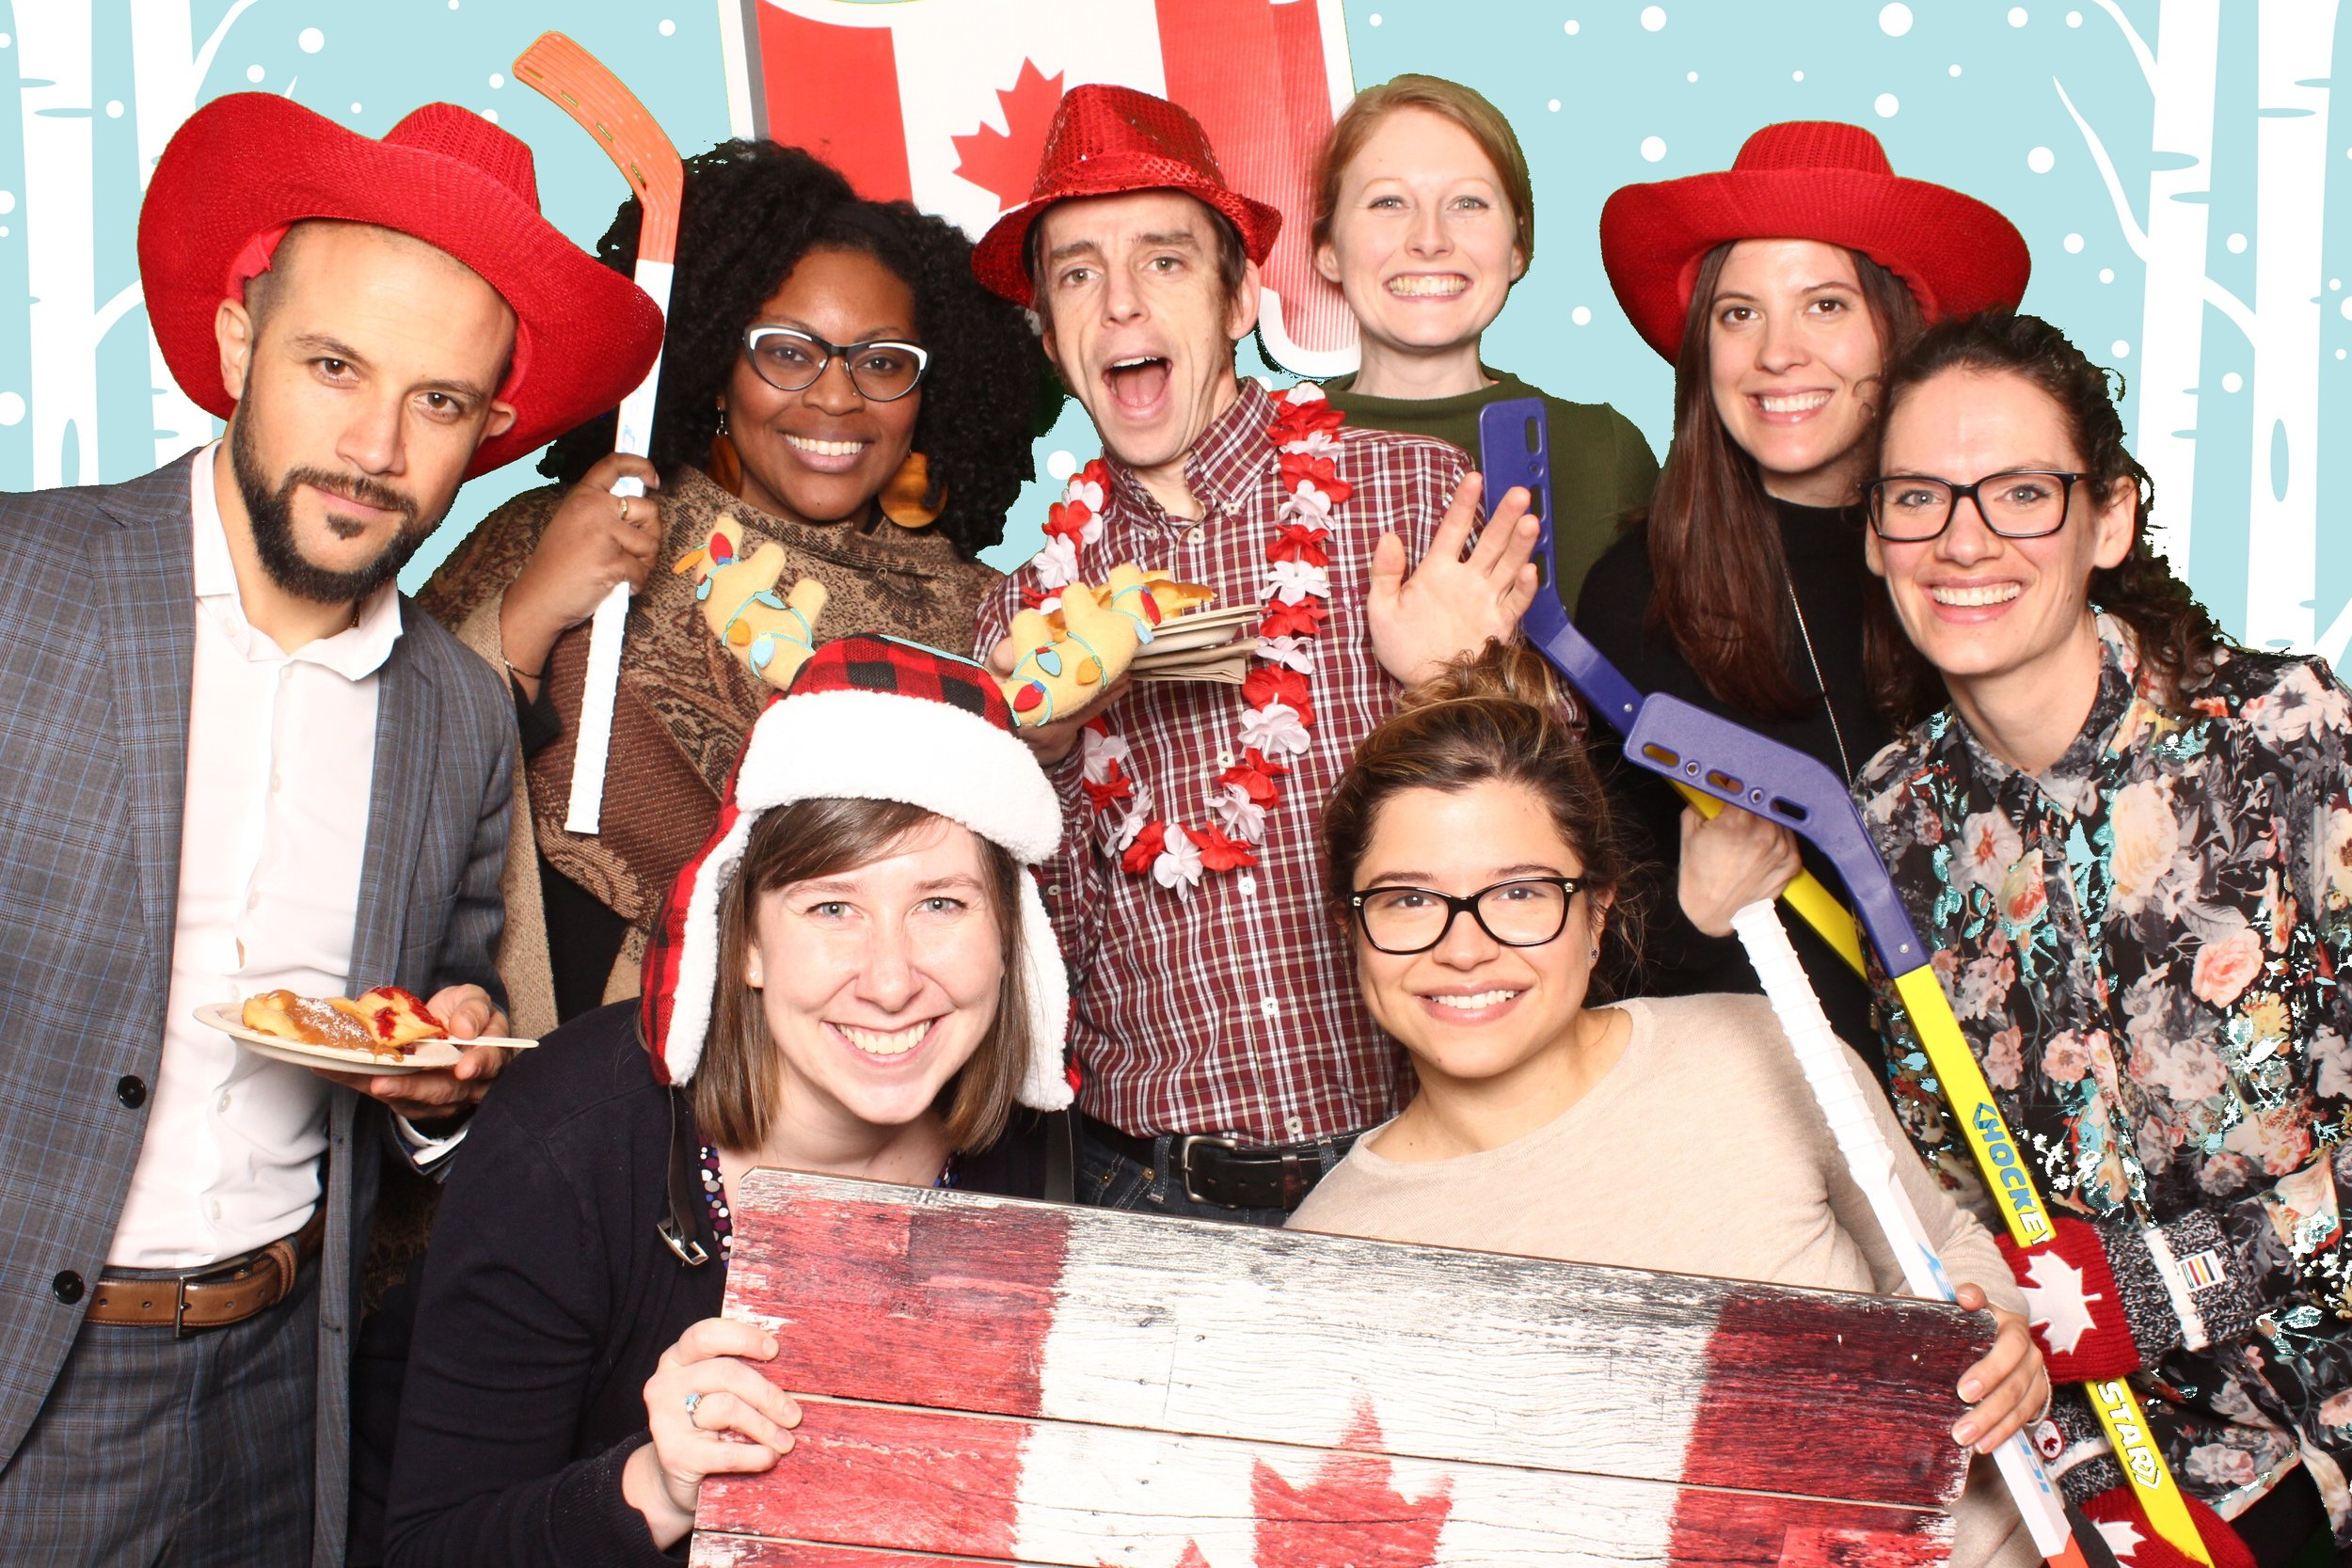 Photobooth fun at the WinterFest tenant event!